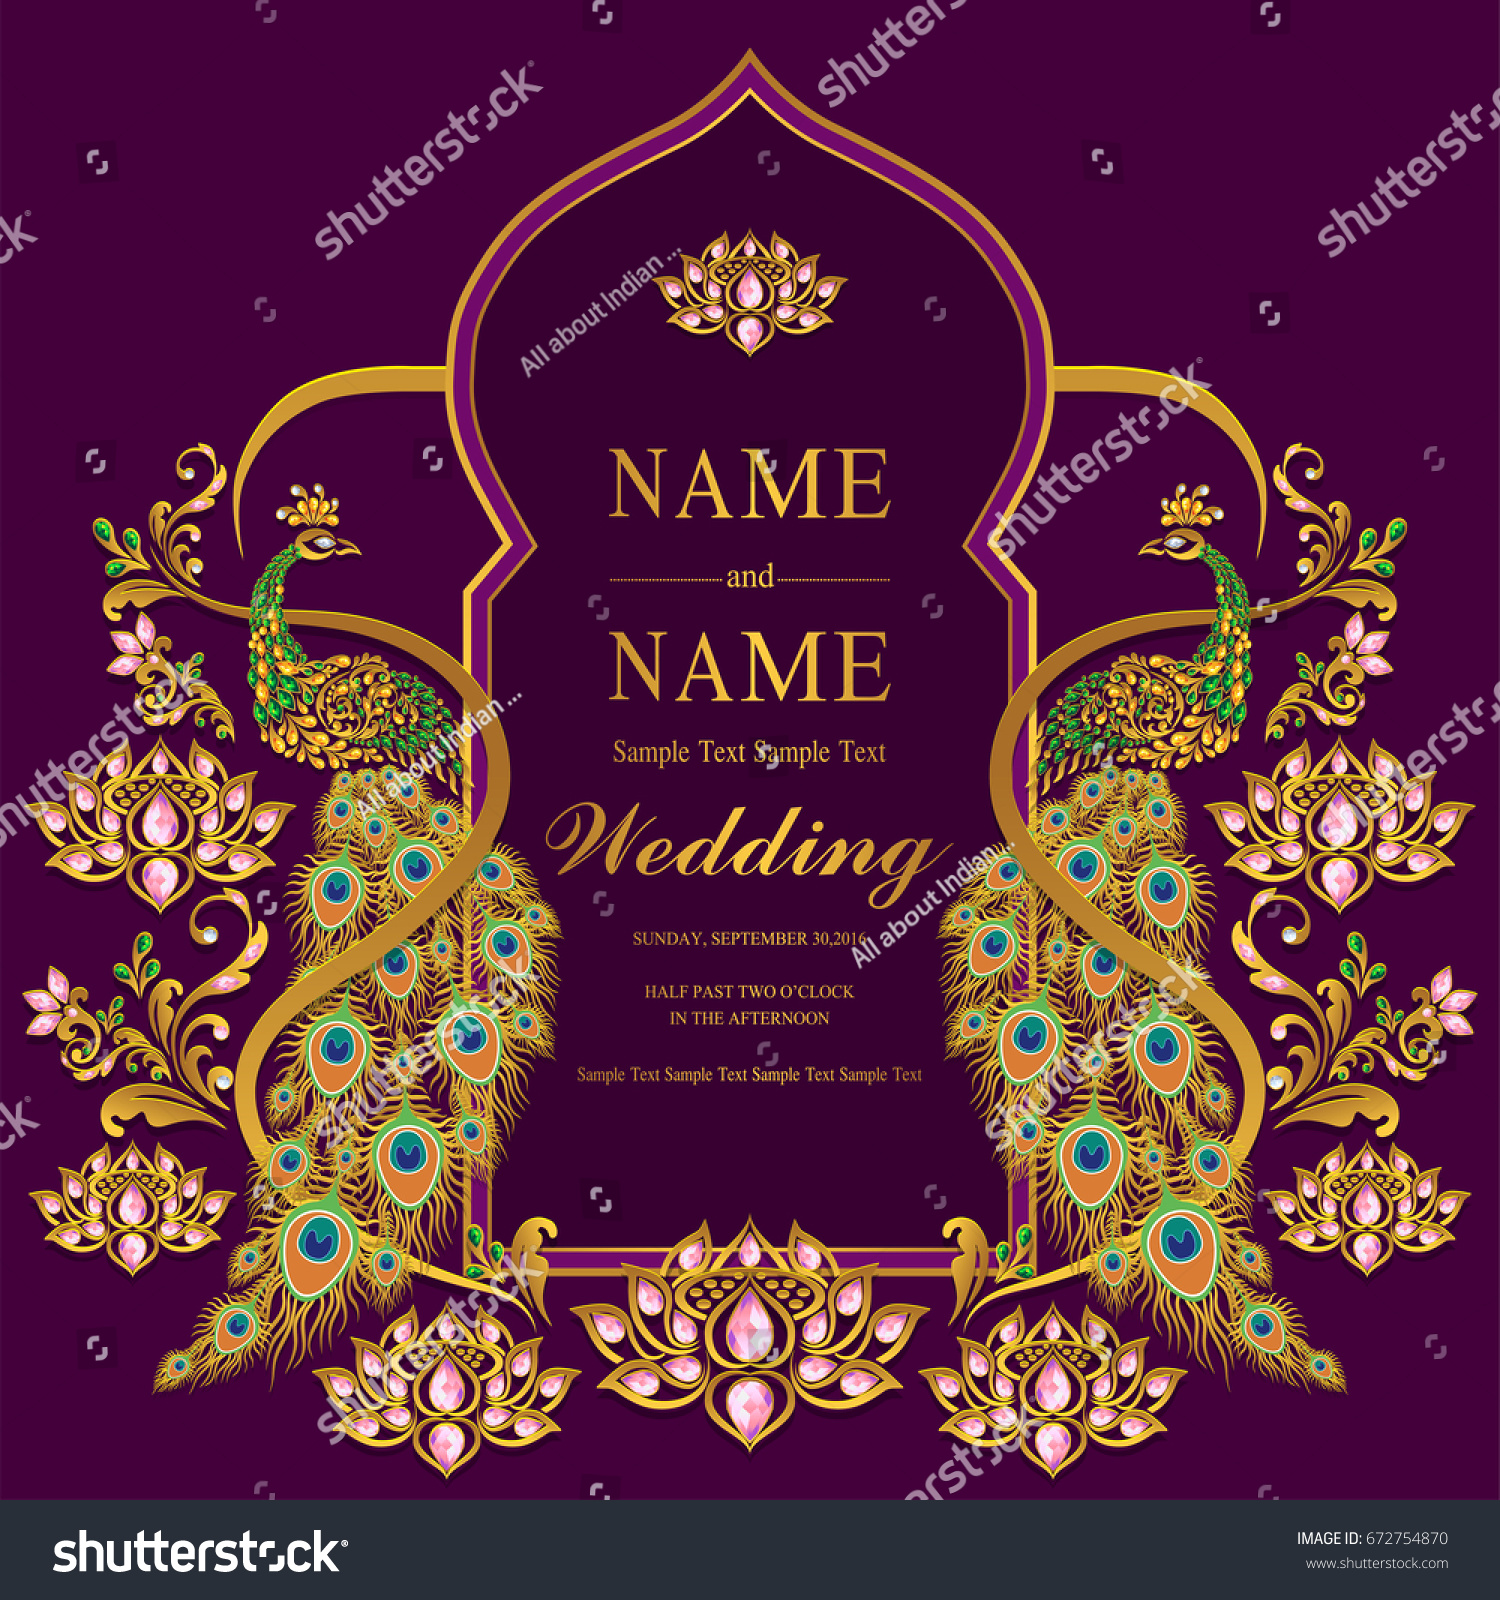 Wedding invitation card templates gold peacock stock vector wedding invitation card templates with gold peacock with lotus patterned and crystals color on paper maxwellsz